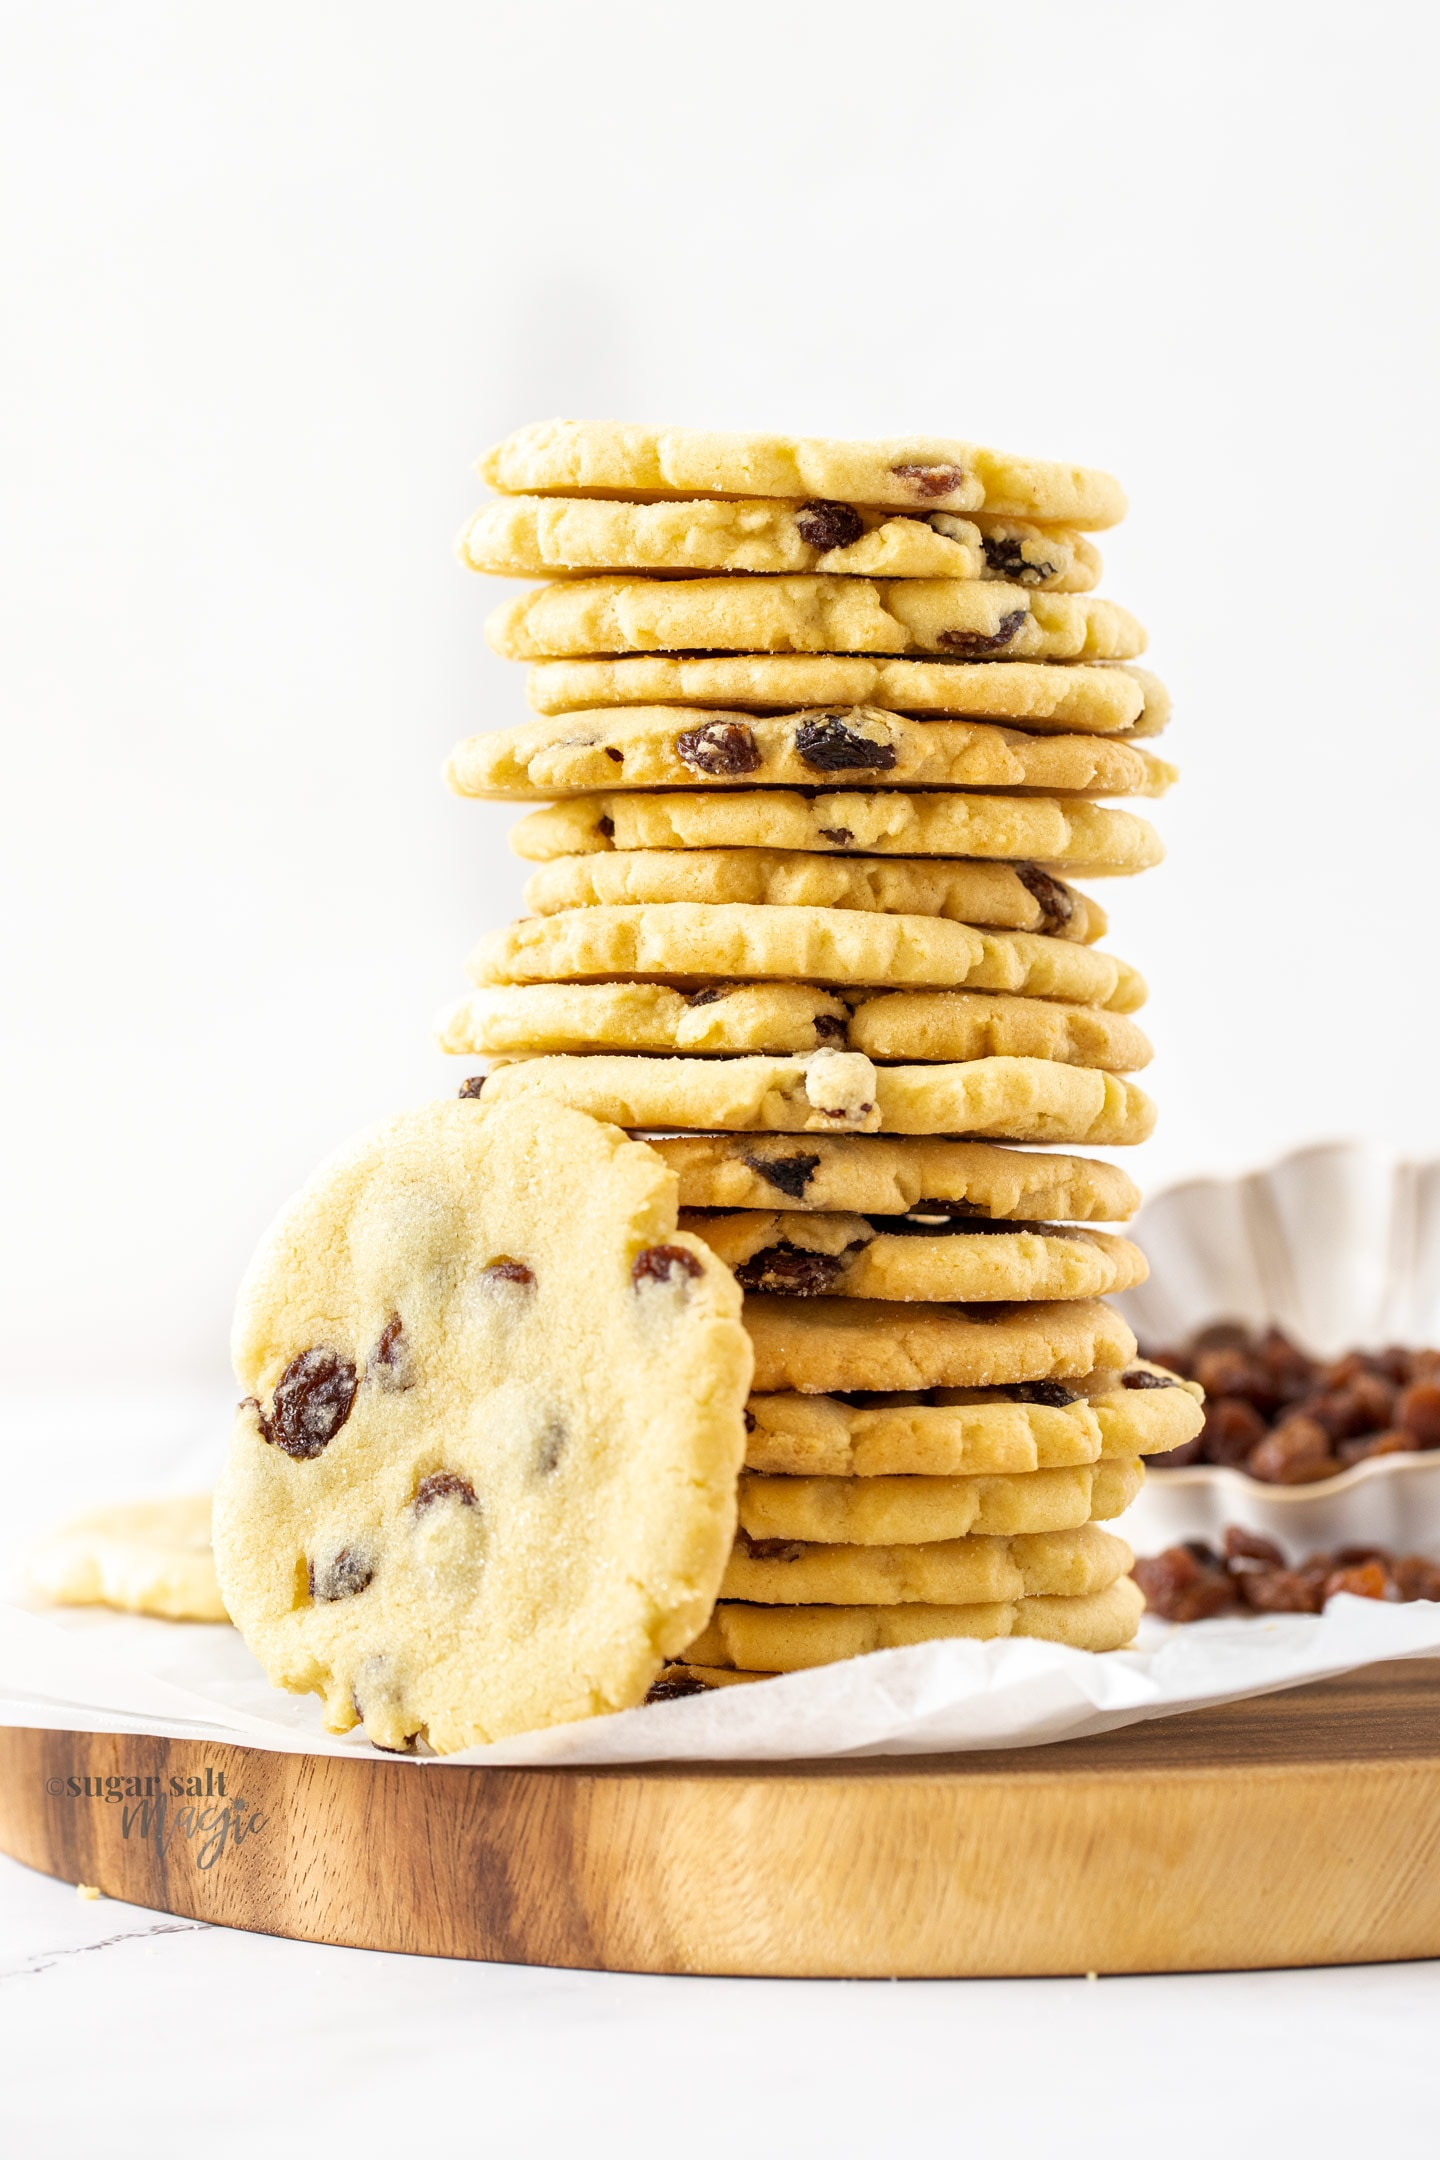 A very tall stack of sultana cookies on a wooden board.